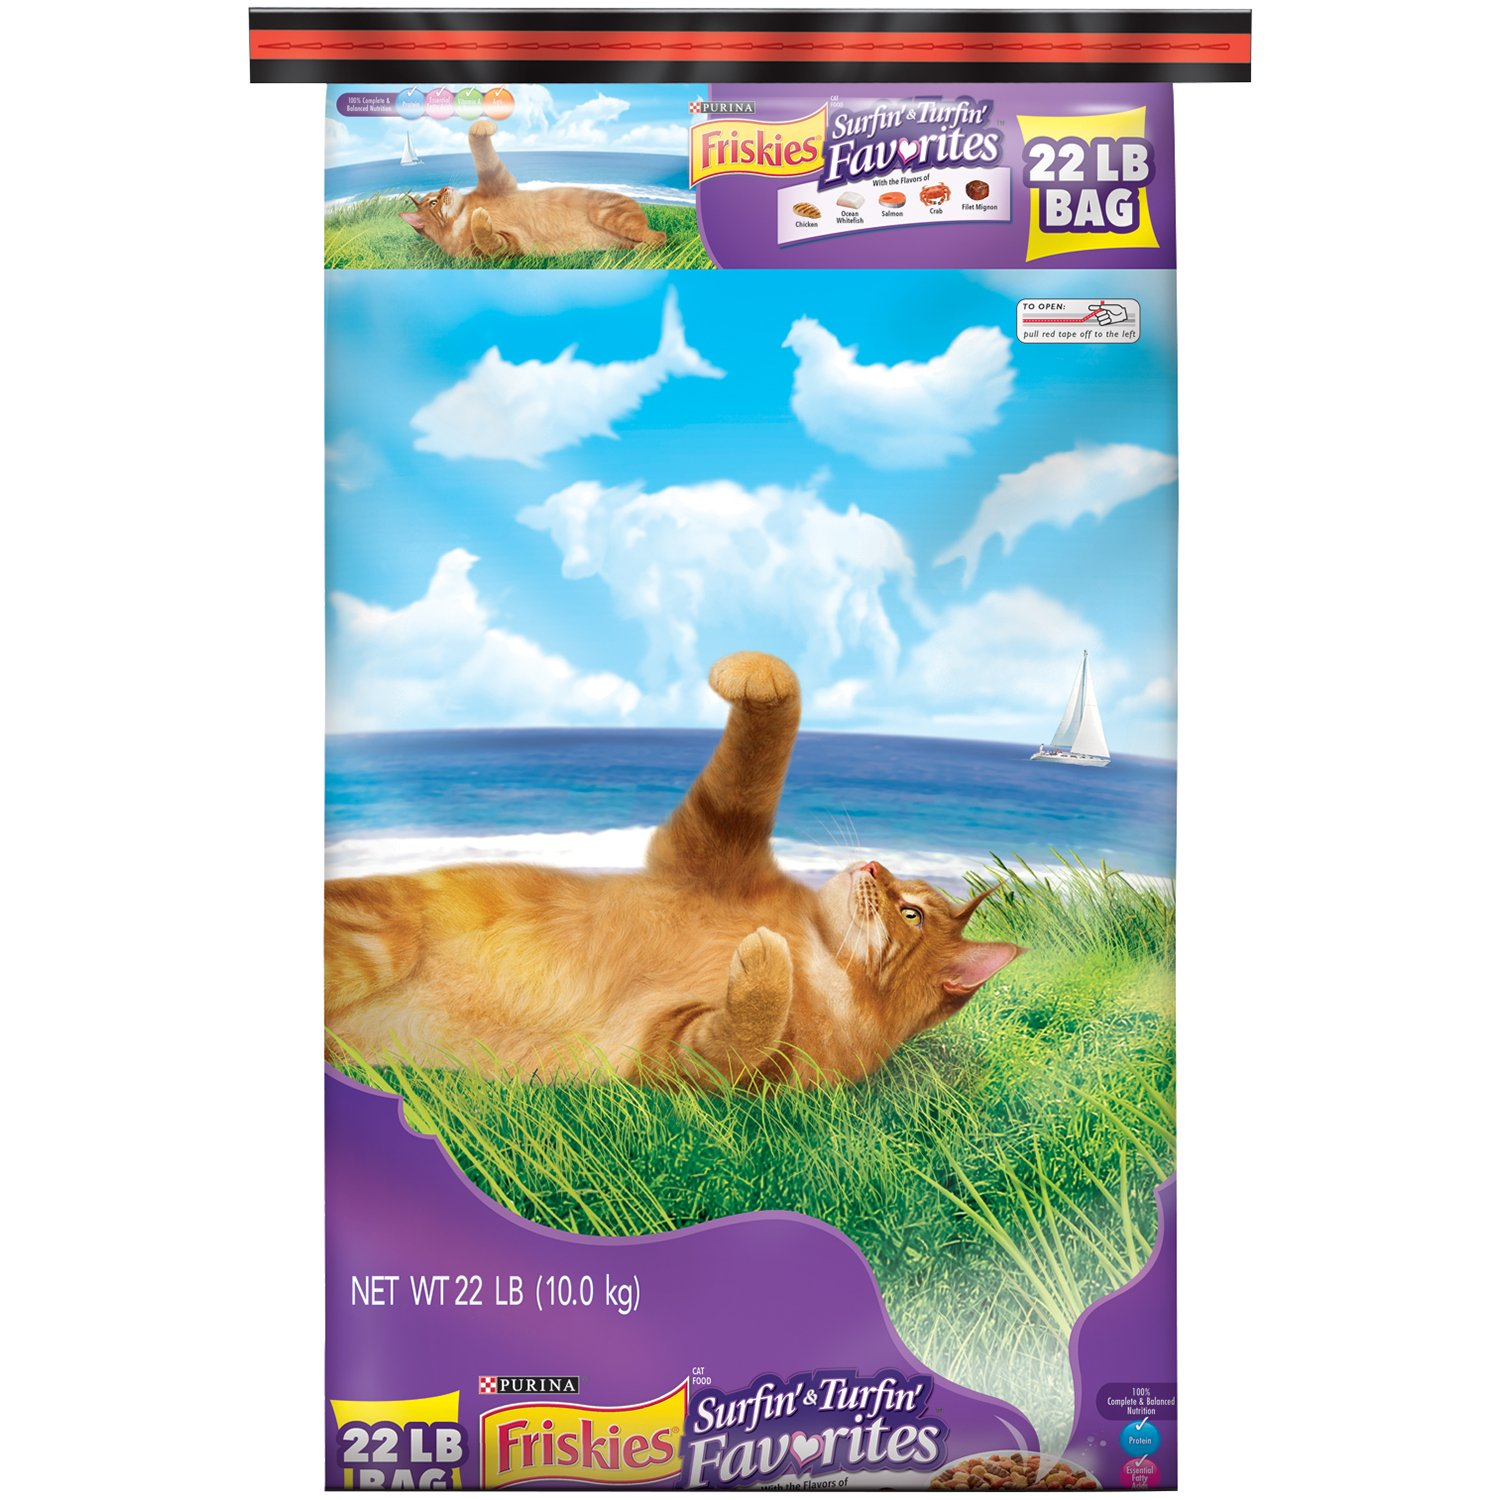 22 LB Friskies Dry Cat Food, Surfin 'e Turfin' Favriti, 22 -Pound Bag, Pack of 1